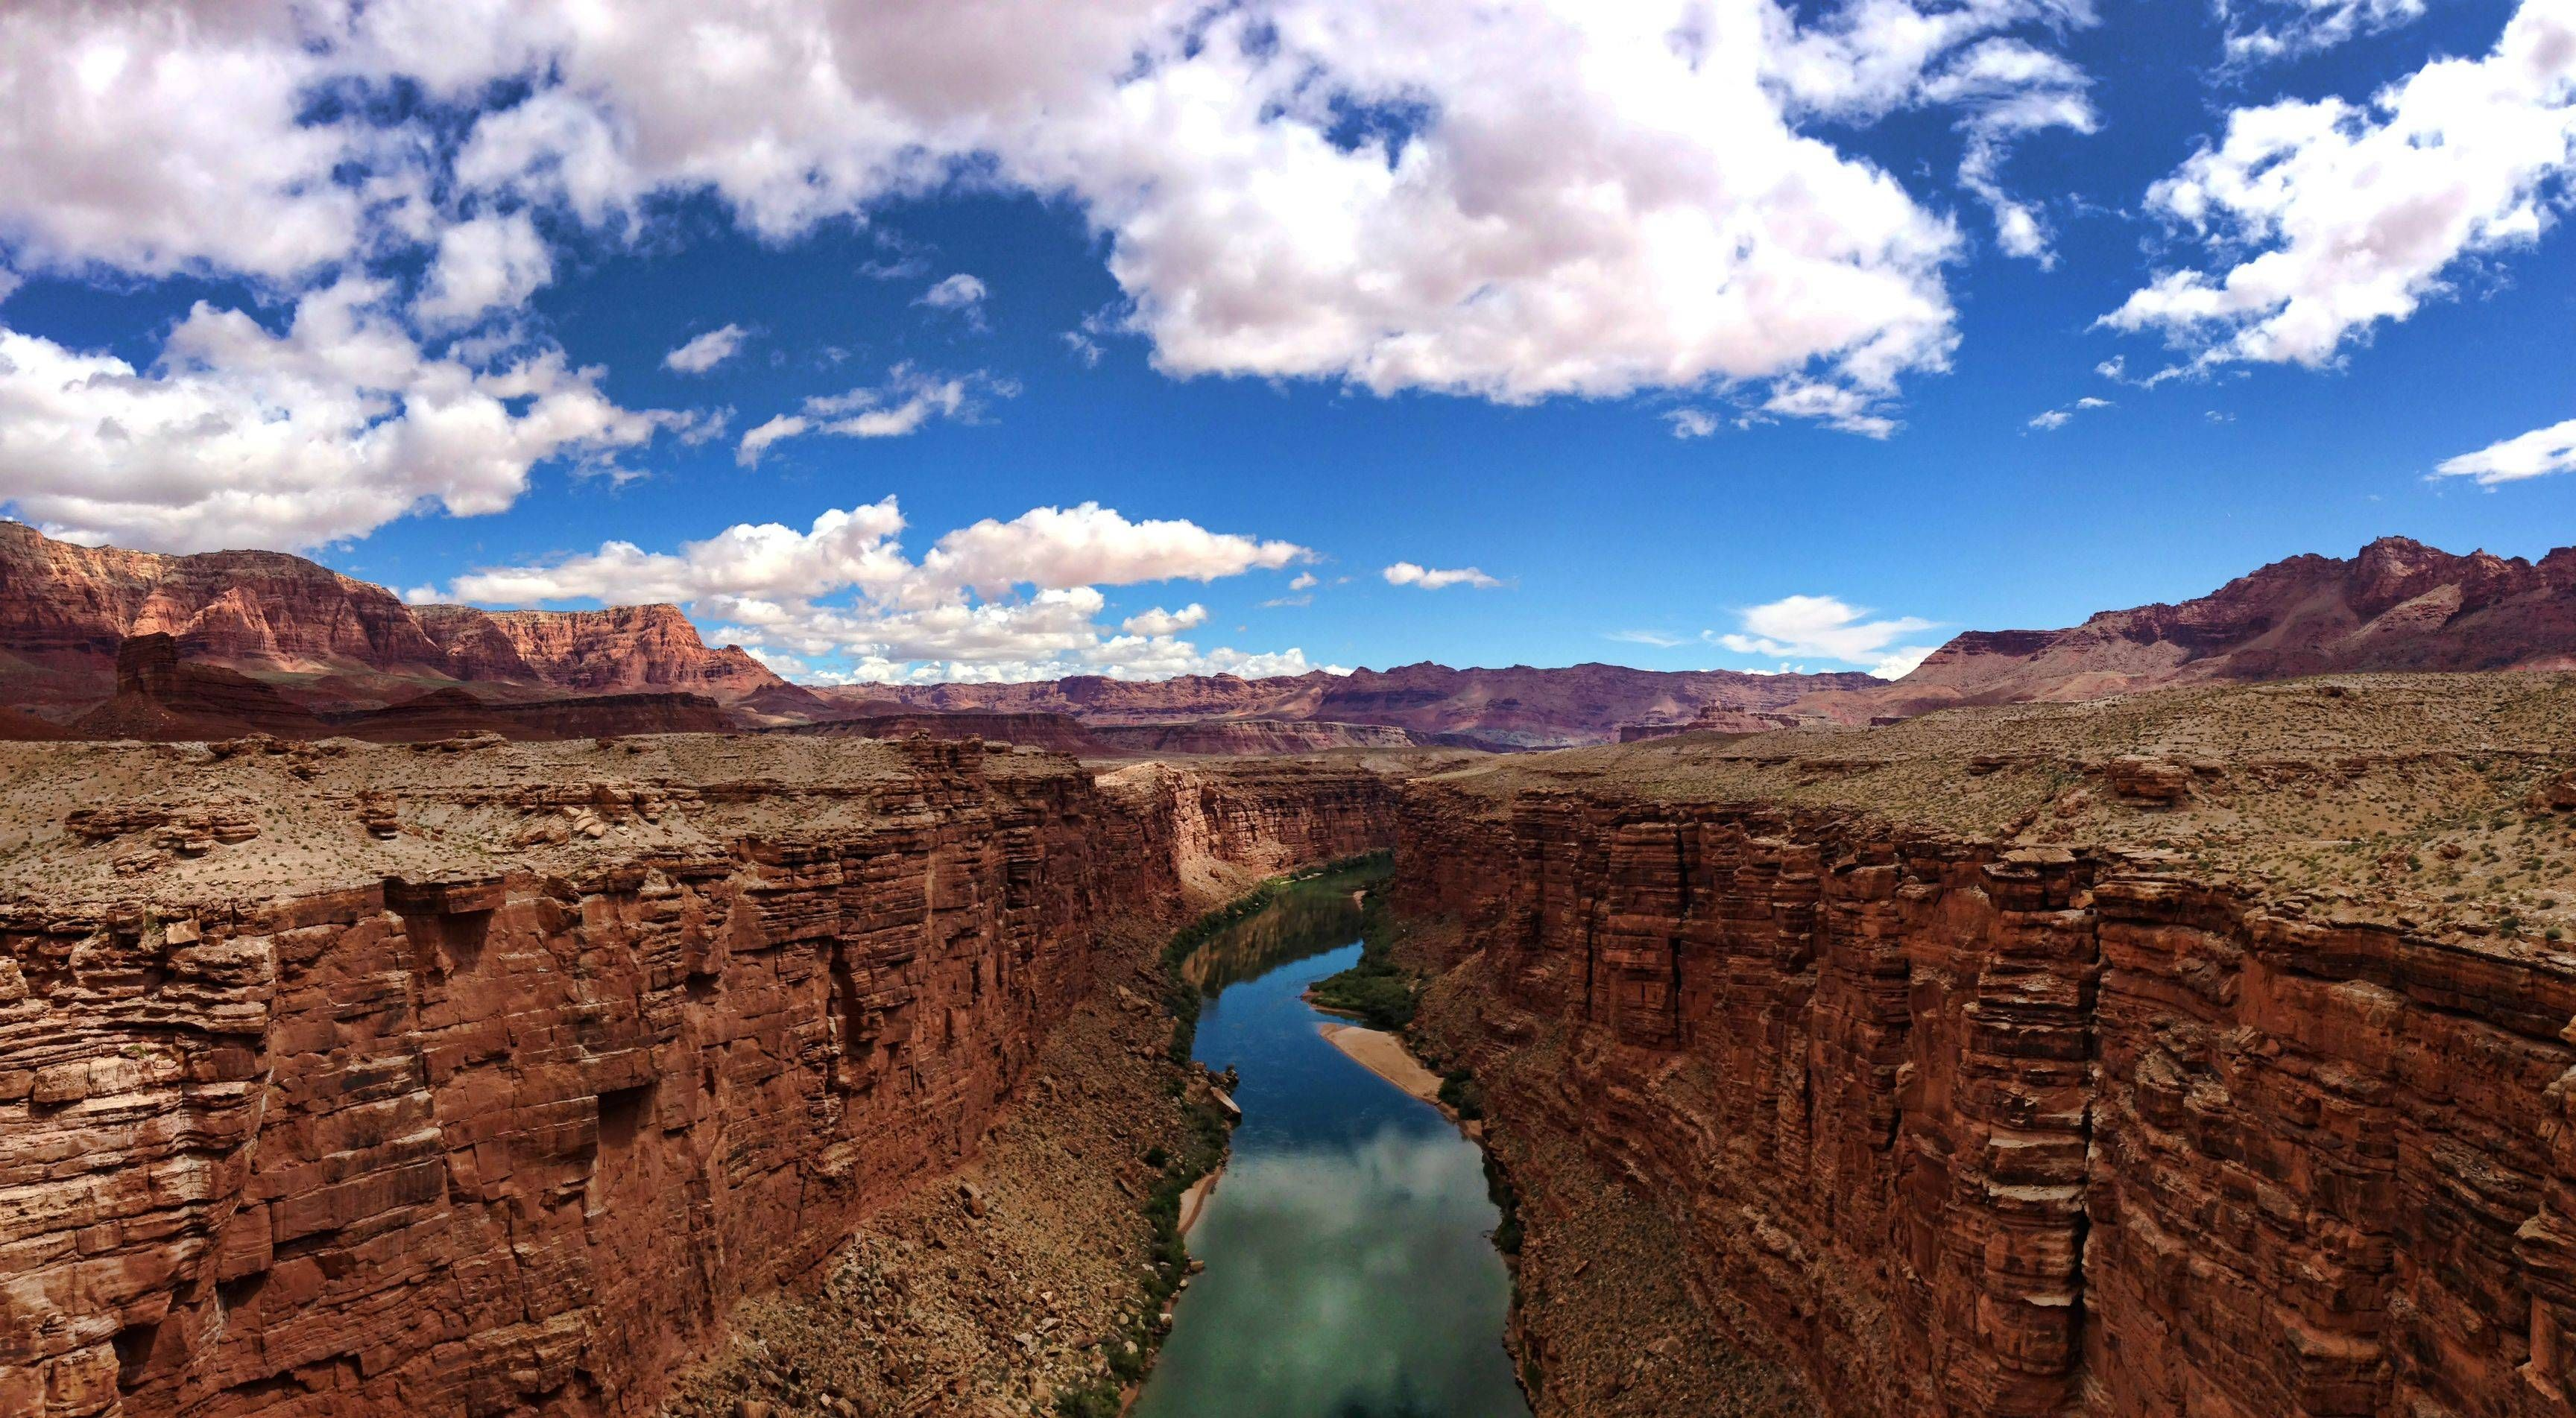 Plan your vacation to the Grand Canyon